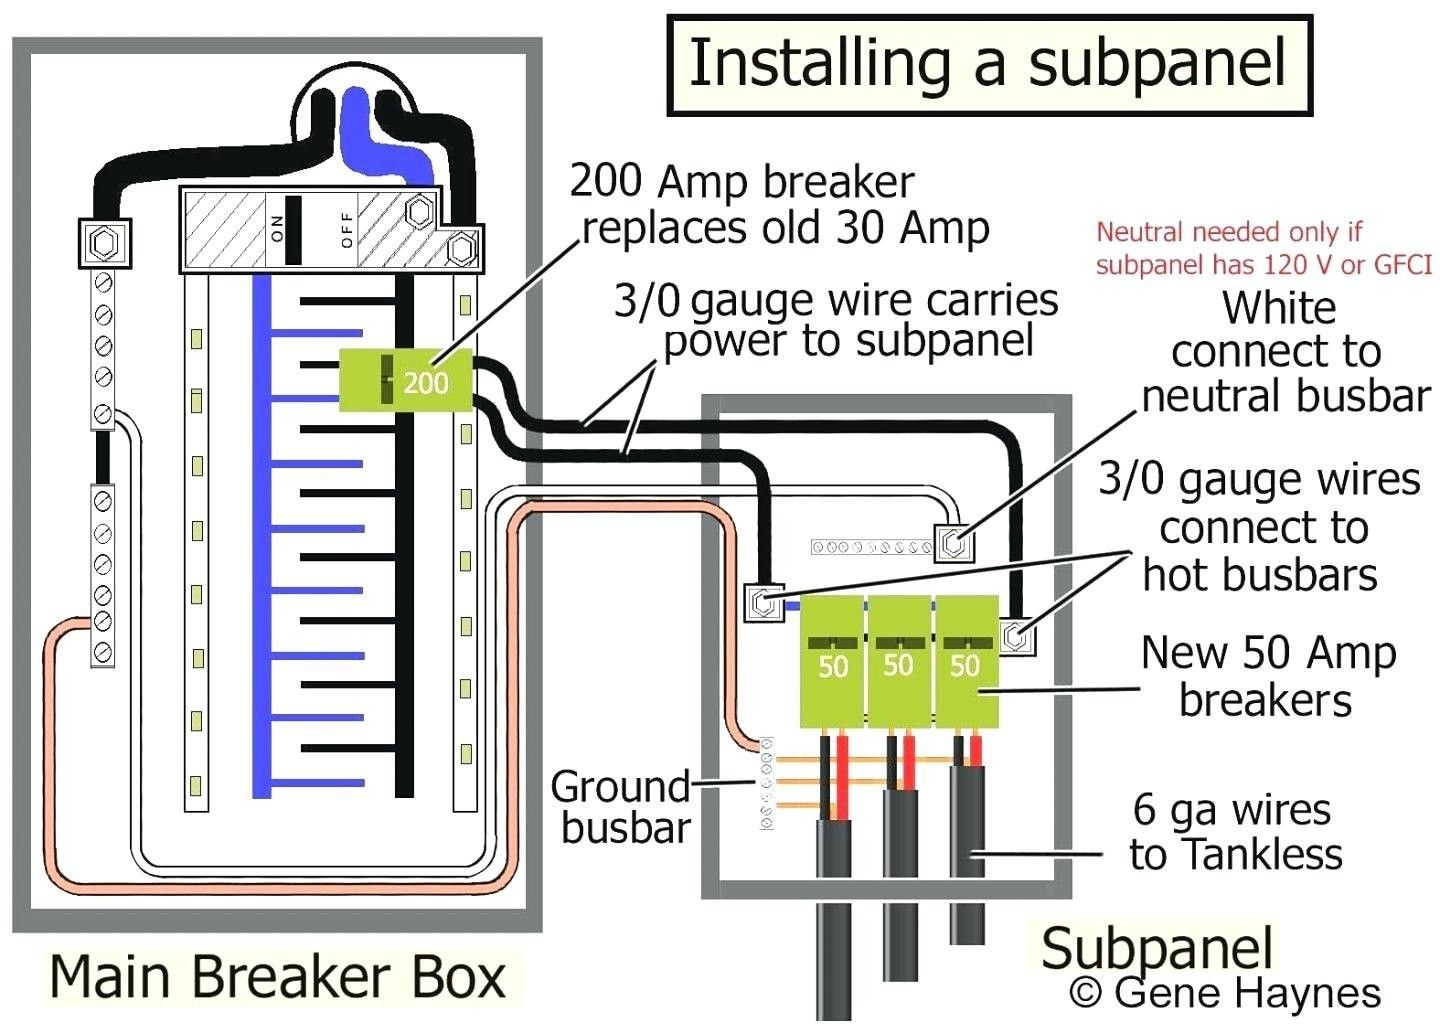 30 Amp Sub Panel Wiring Diagram Inspirational In 2020 Wiring A Plug Home Electrical Wiring Electrical Wiring Outlets